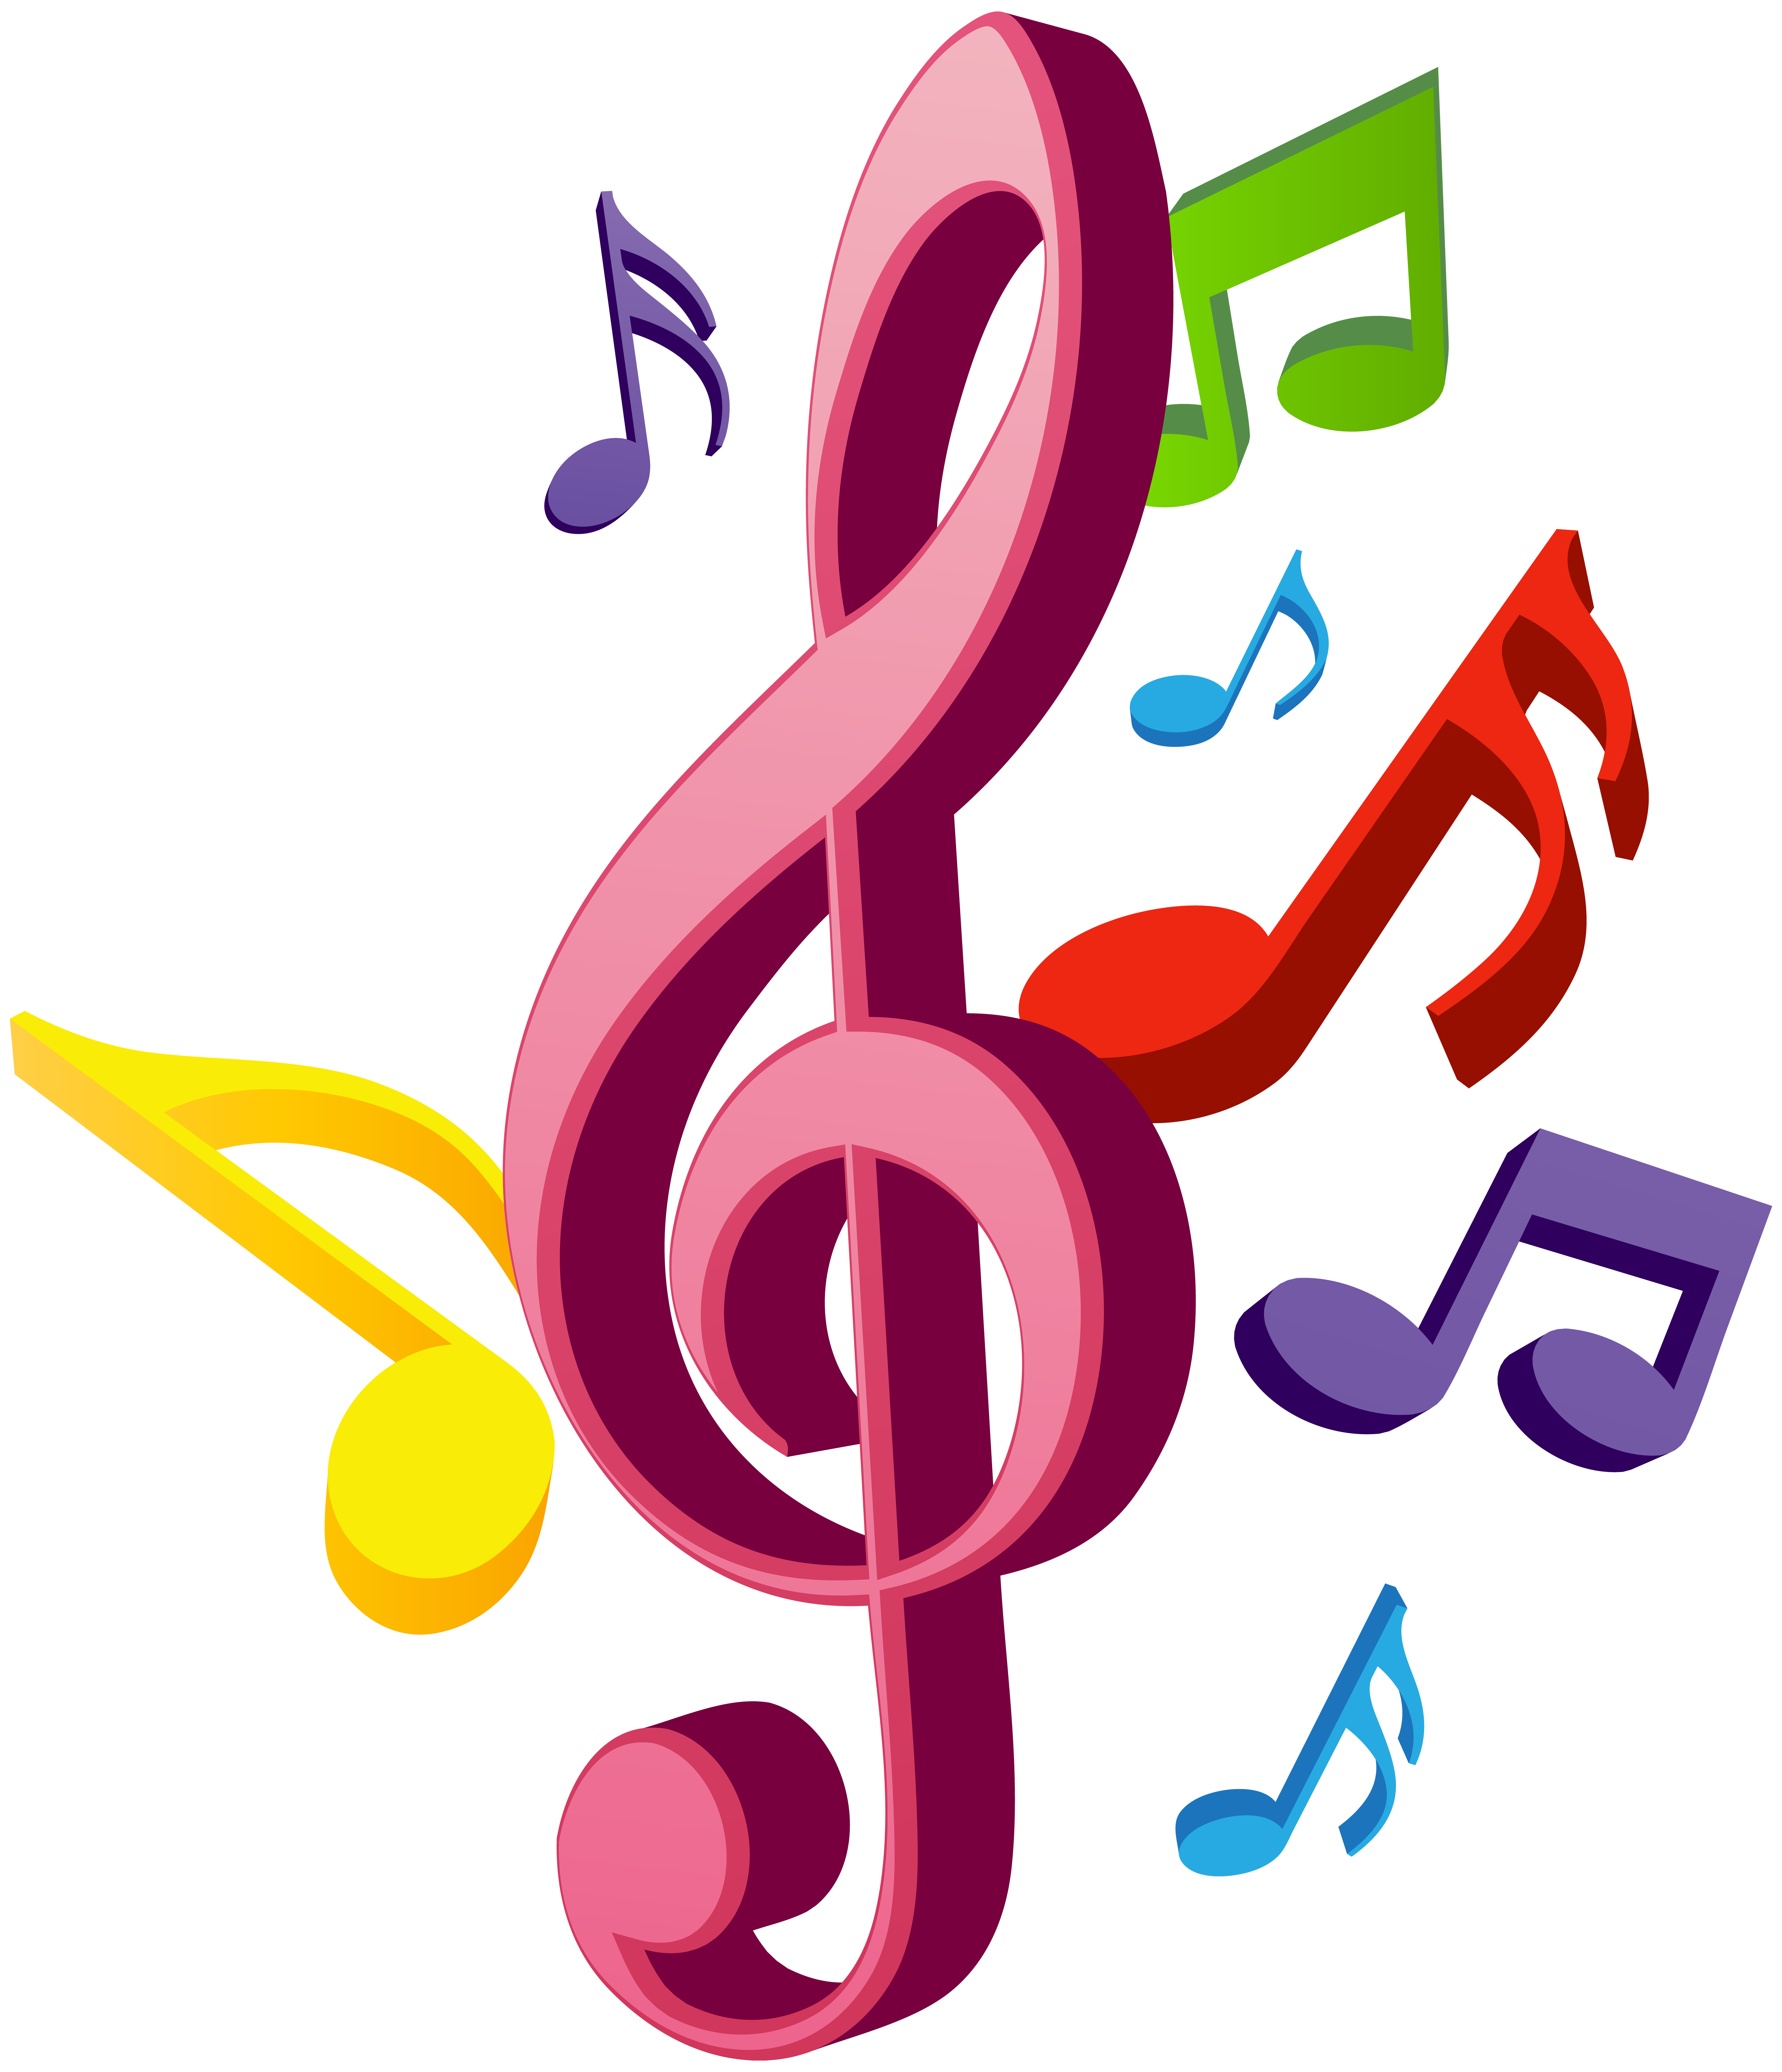 Music png clip art. Notes clipart dancing